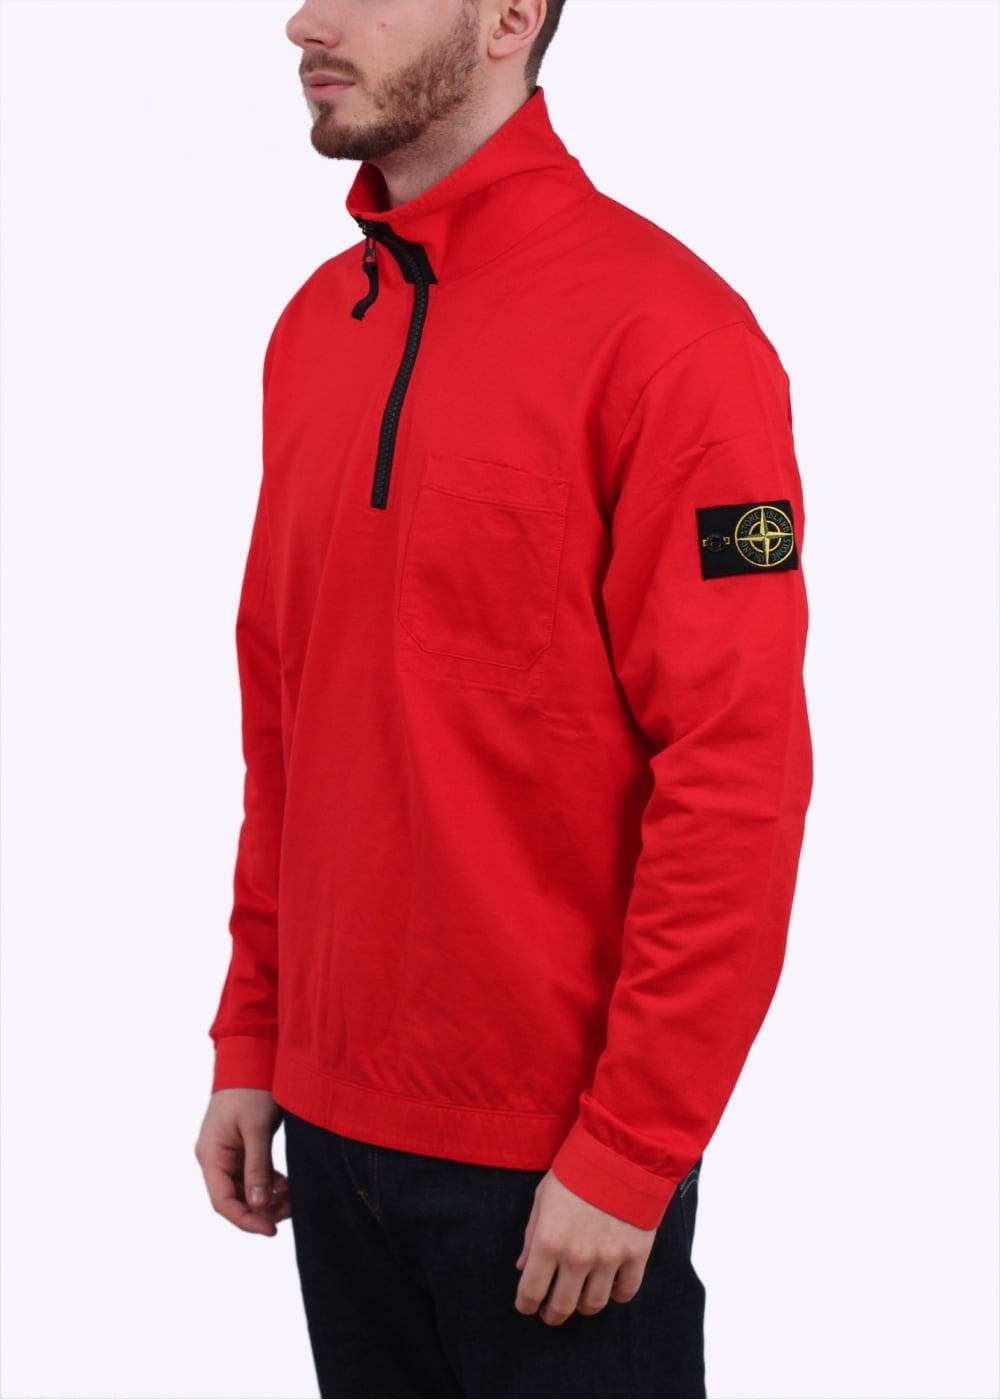 stone island 1 4 zip sweater red. Black Bedroom Furniture Sets. Home Design Ideas